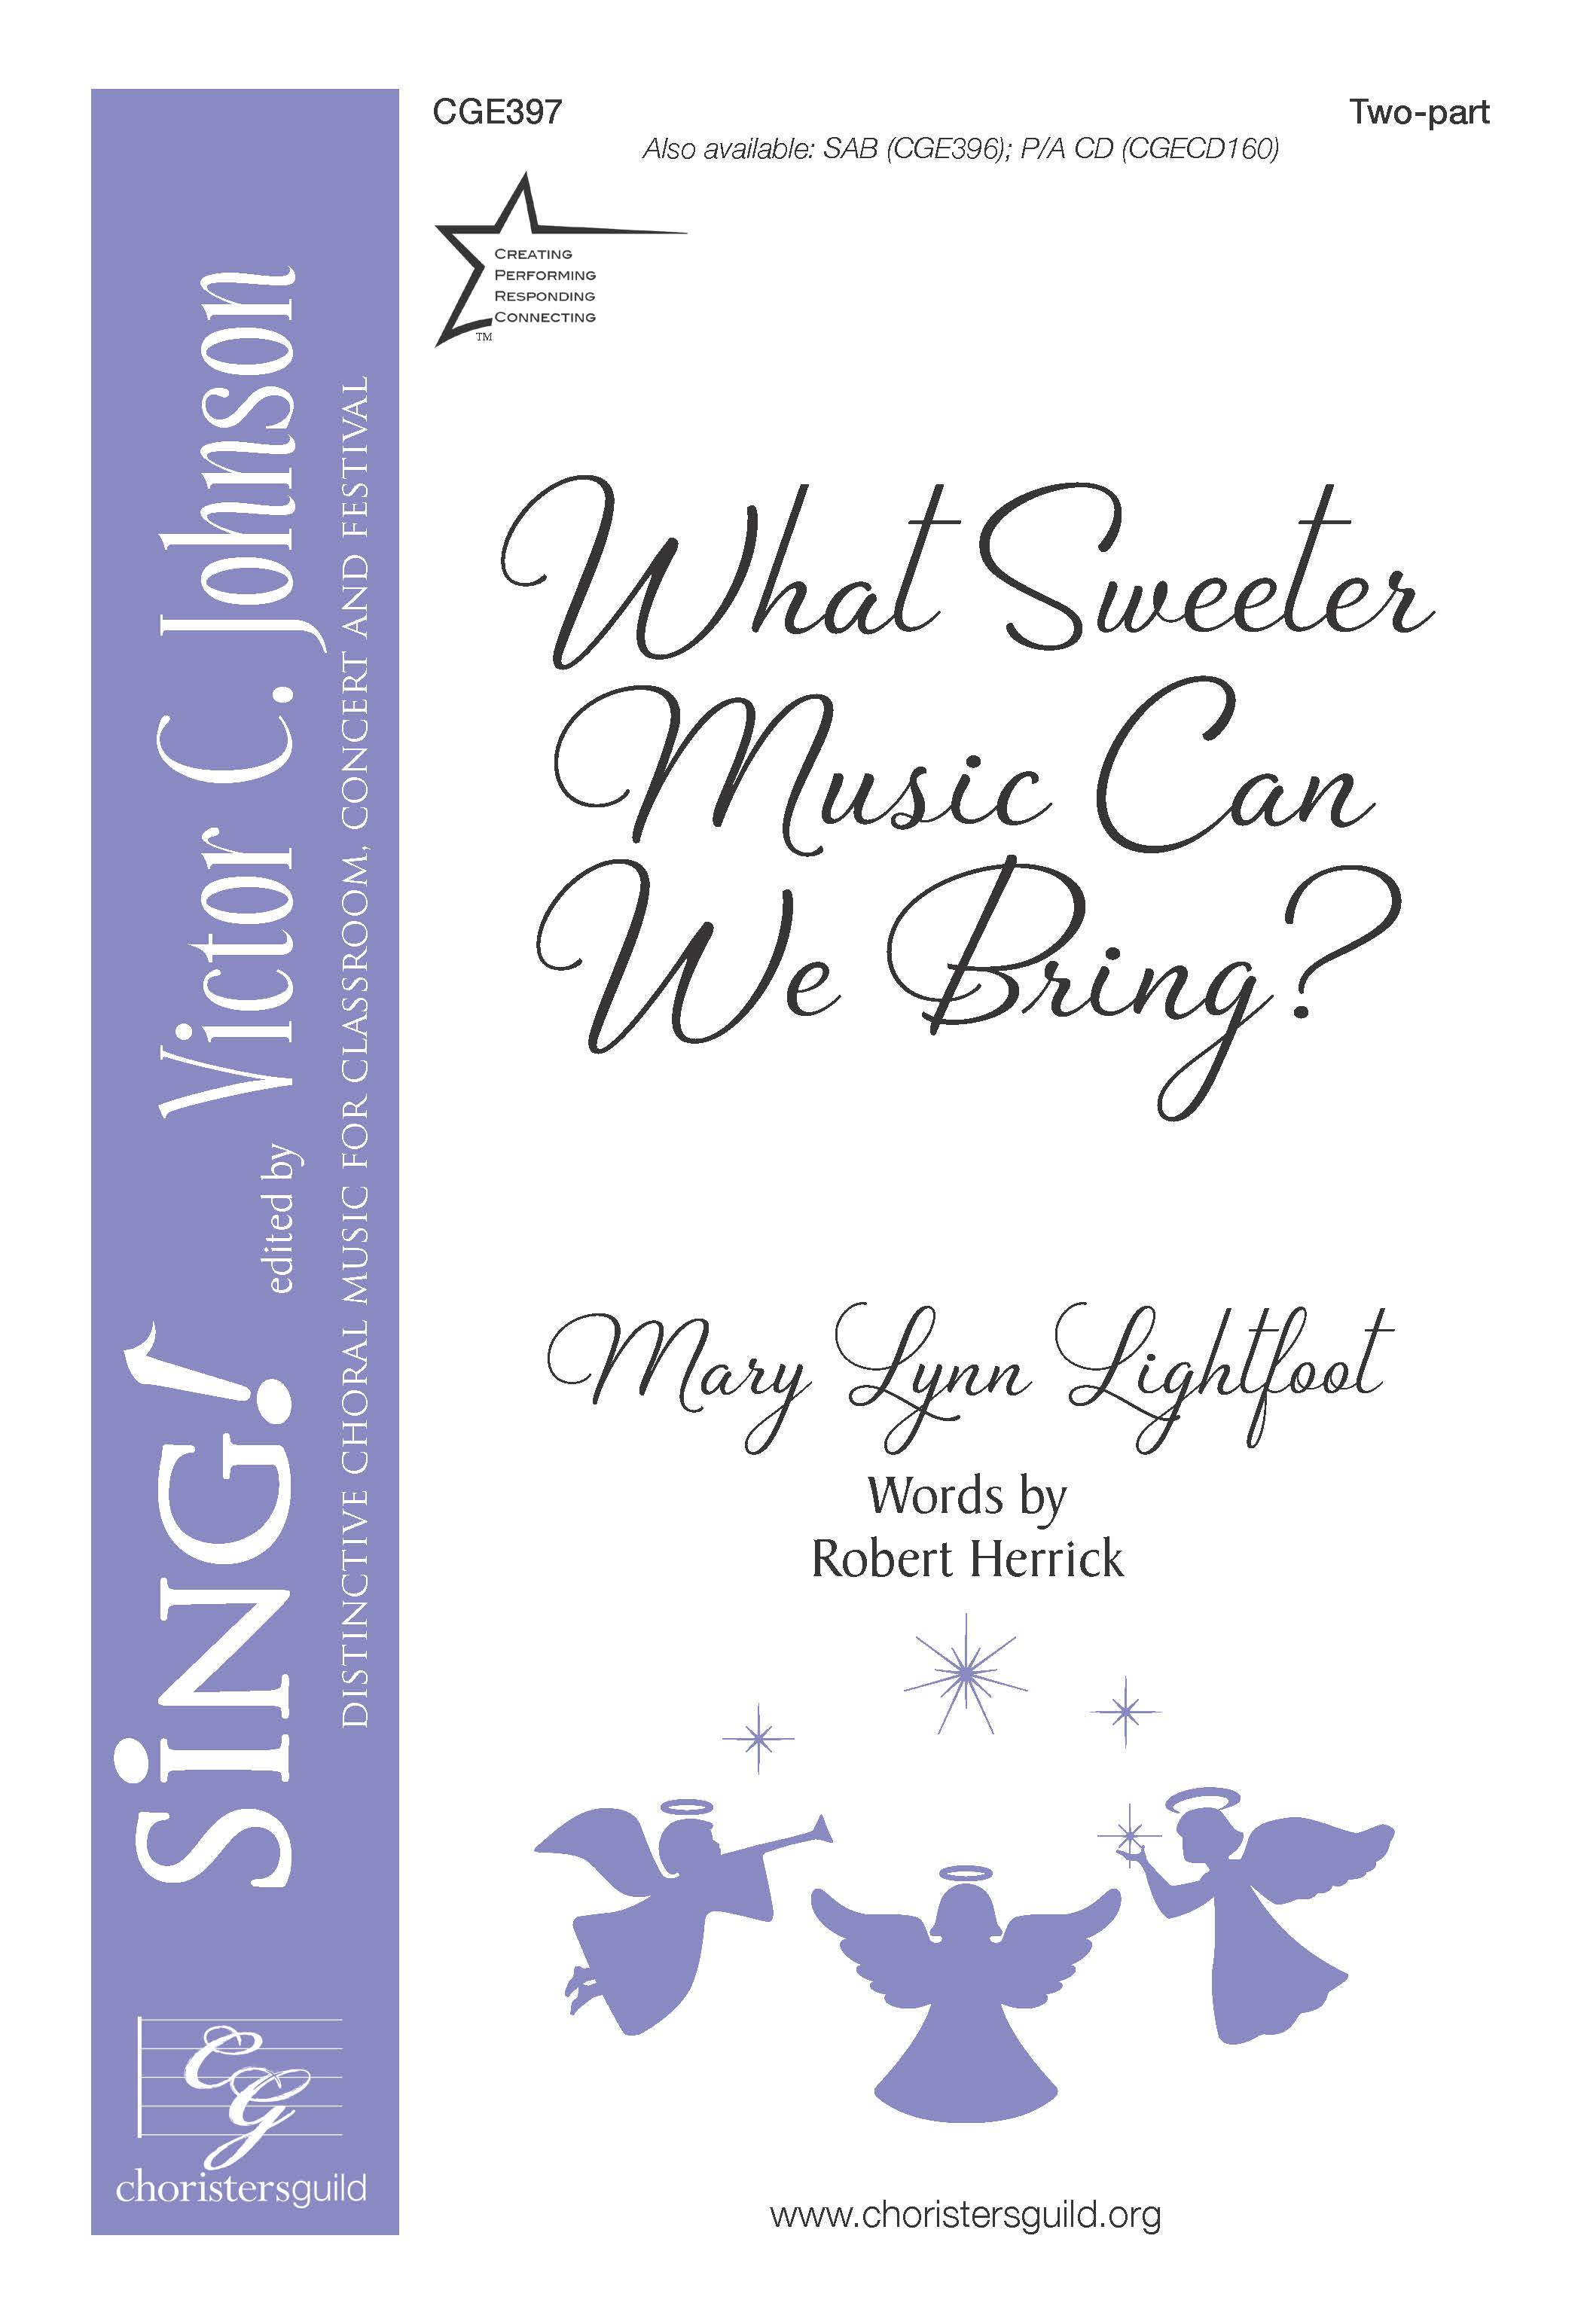 What Sweeter Music Can We Bring? - Two-part